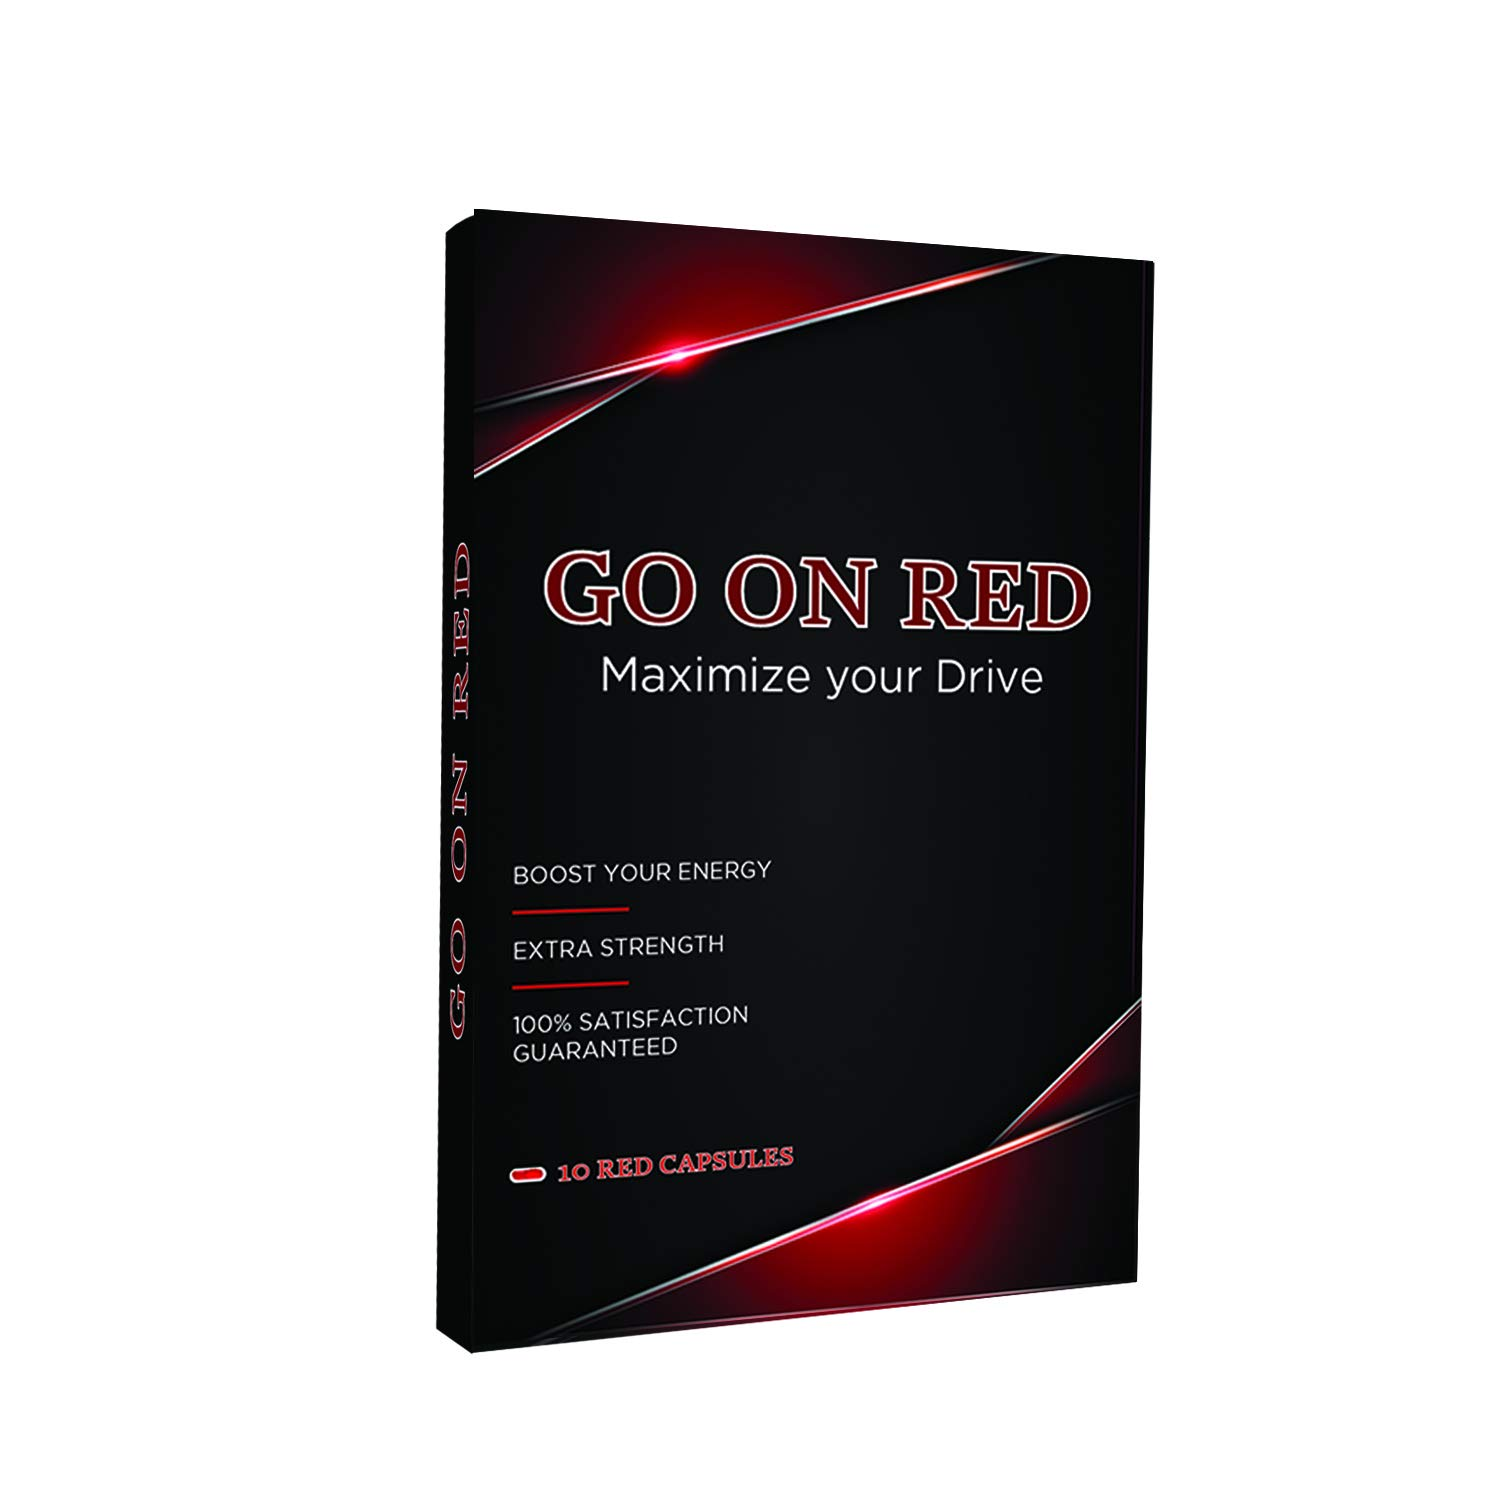 Go On Red, Natural Male Energy Pills, Natural Amplifier for Performance, Energy, and Endurance 10 Red Capsules